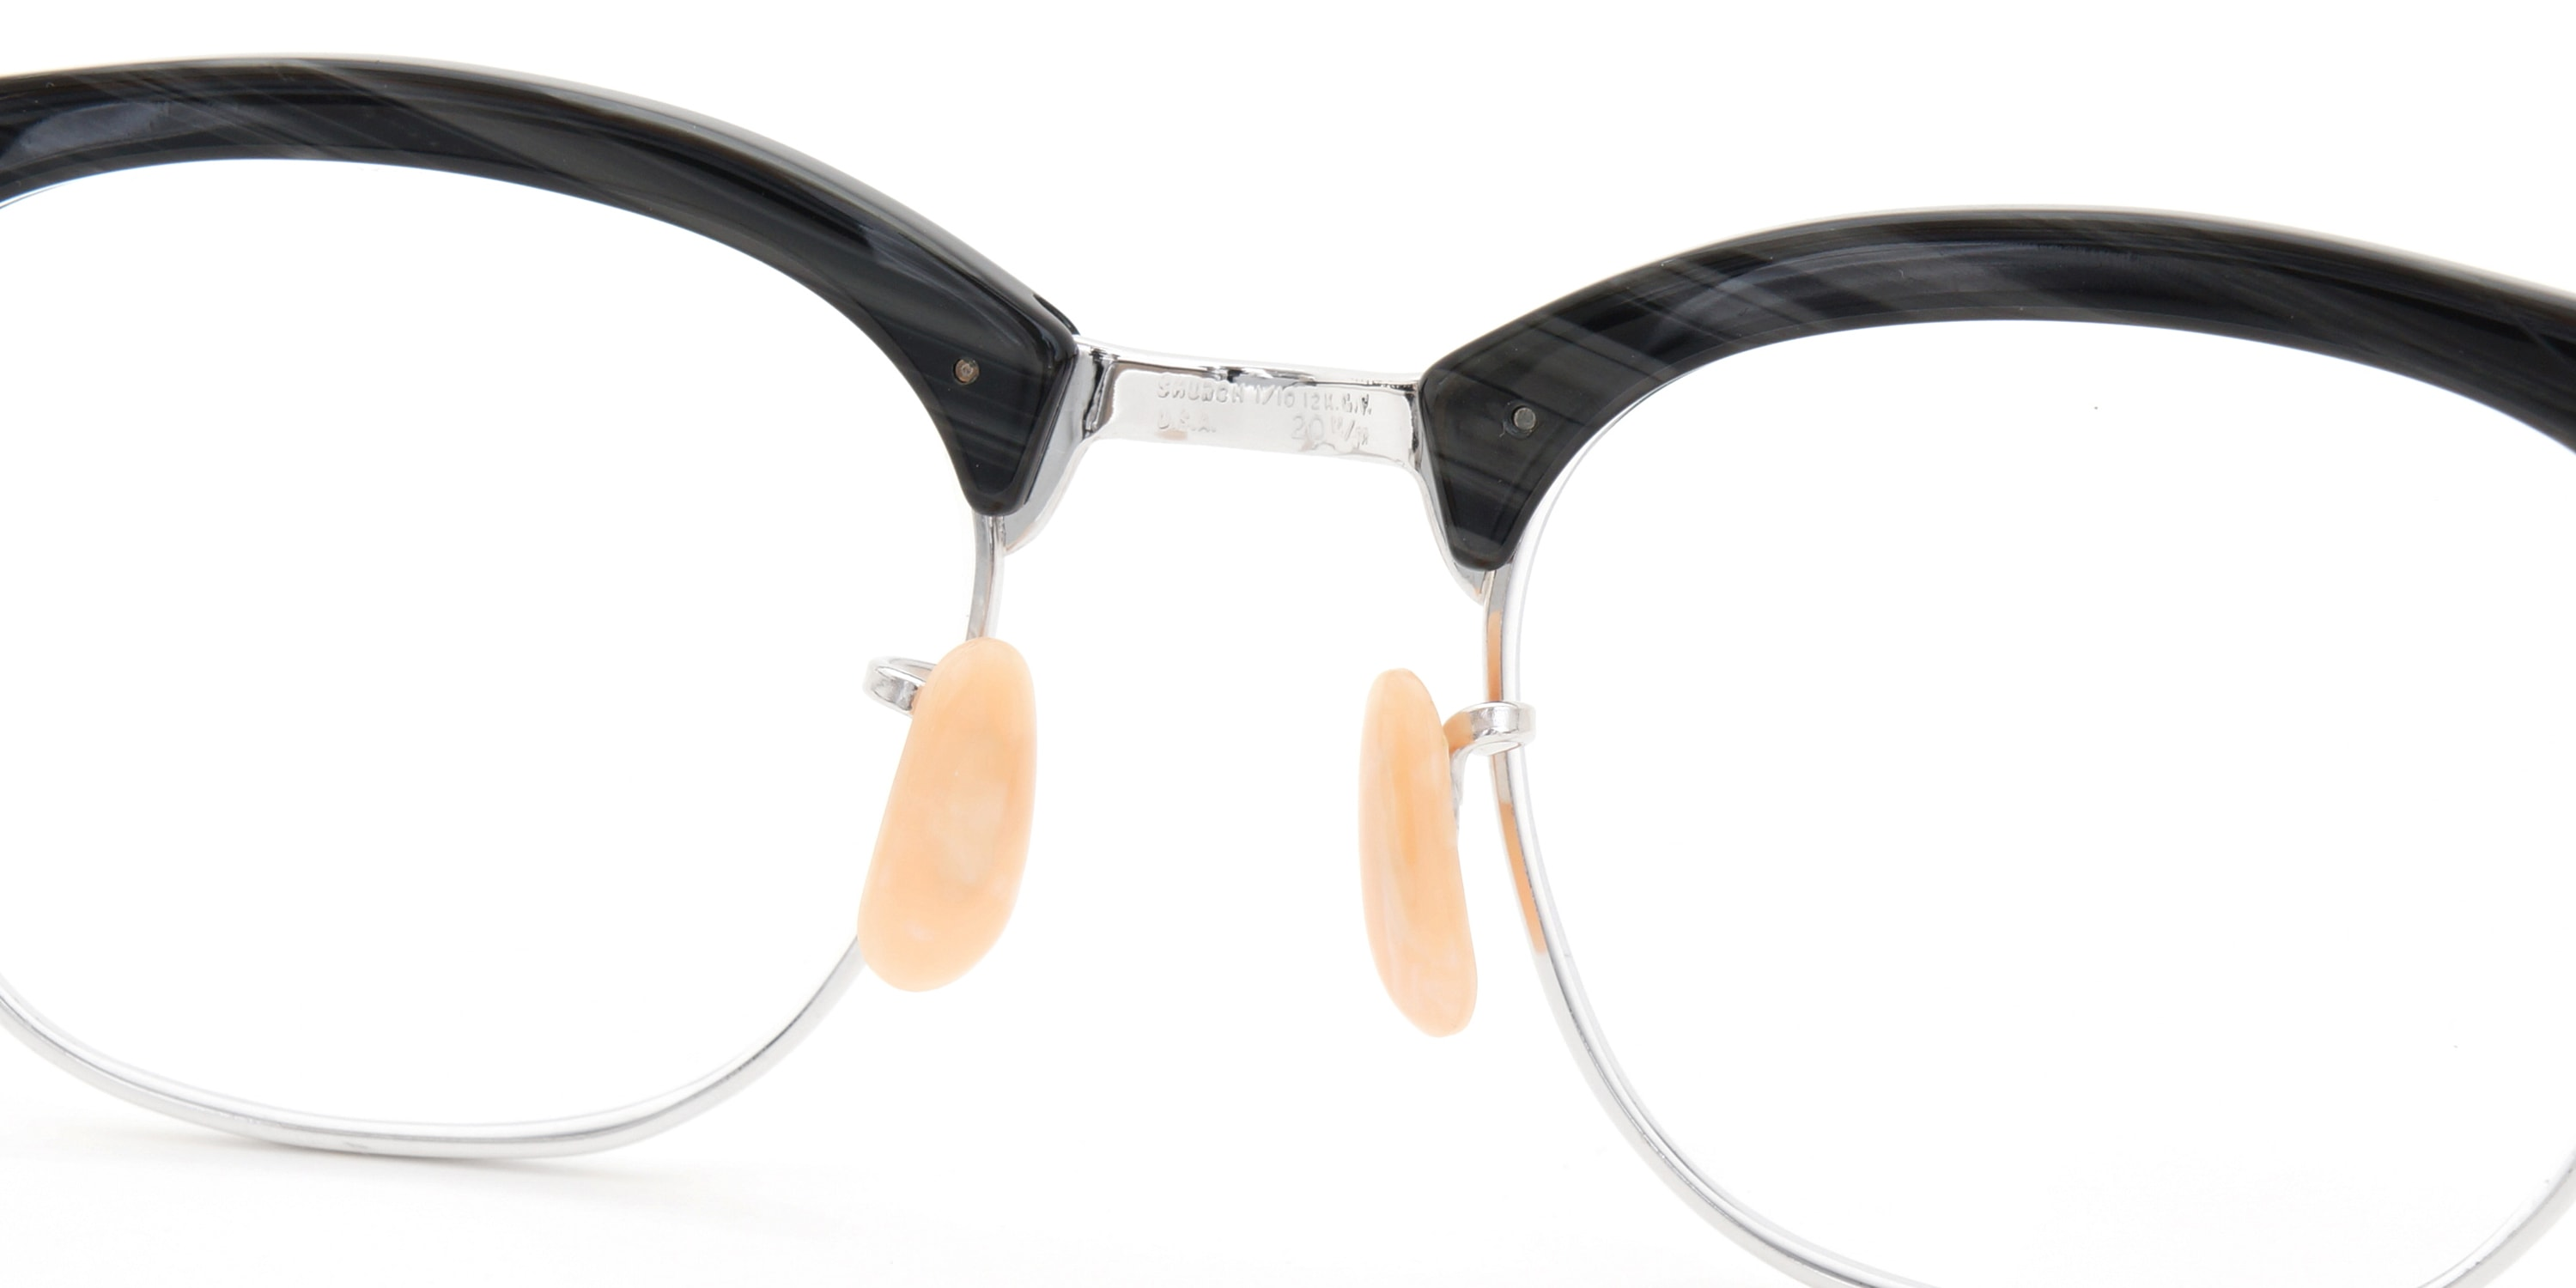 The Spectacle メガネ 1950s-1960s SHURON RONSIR Black-Stone WG 1/10 12KGF 46/20 イメージ13